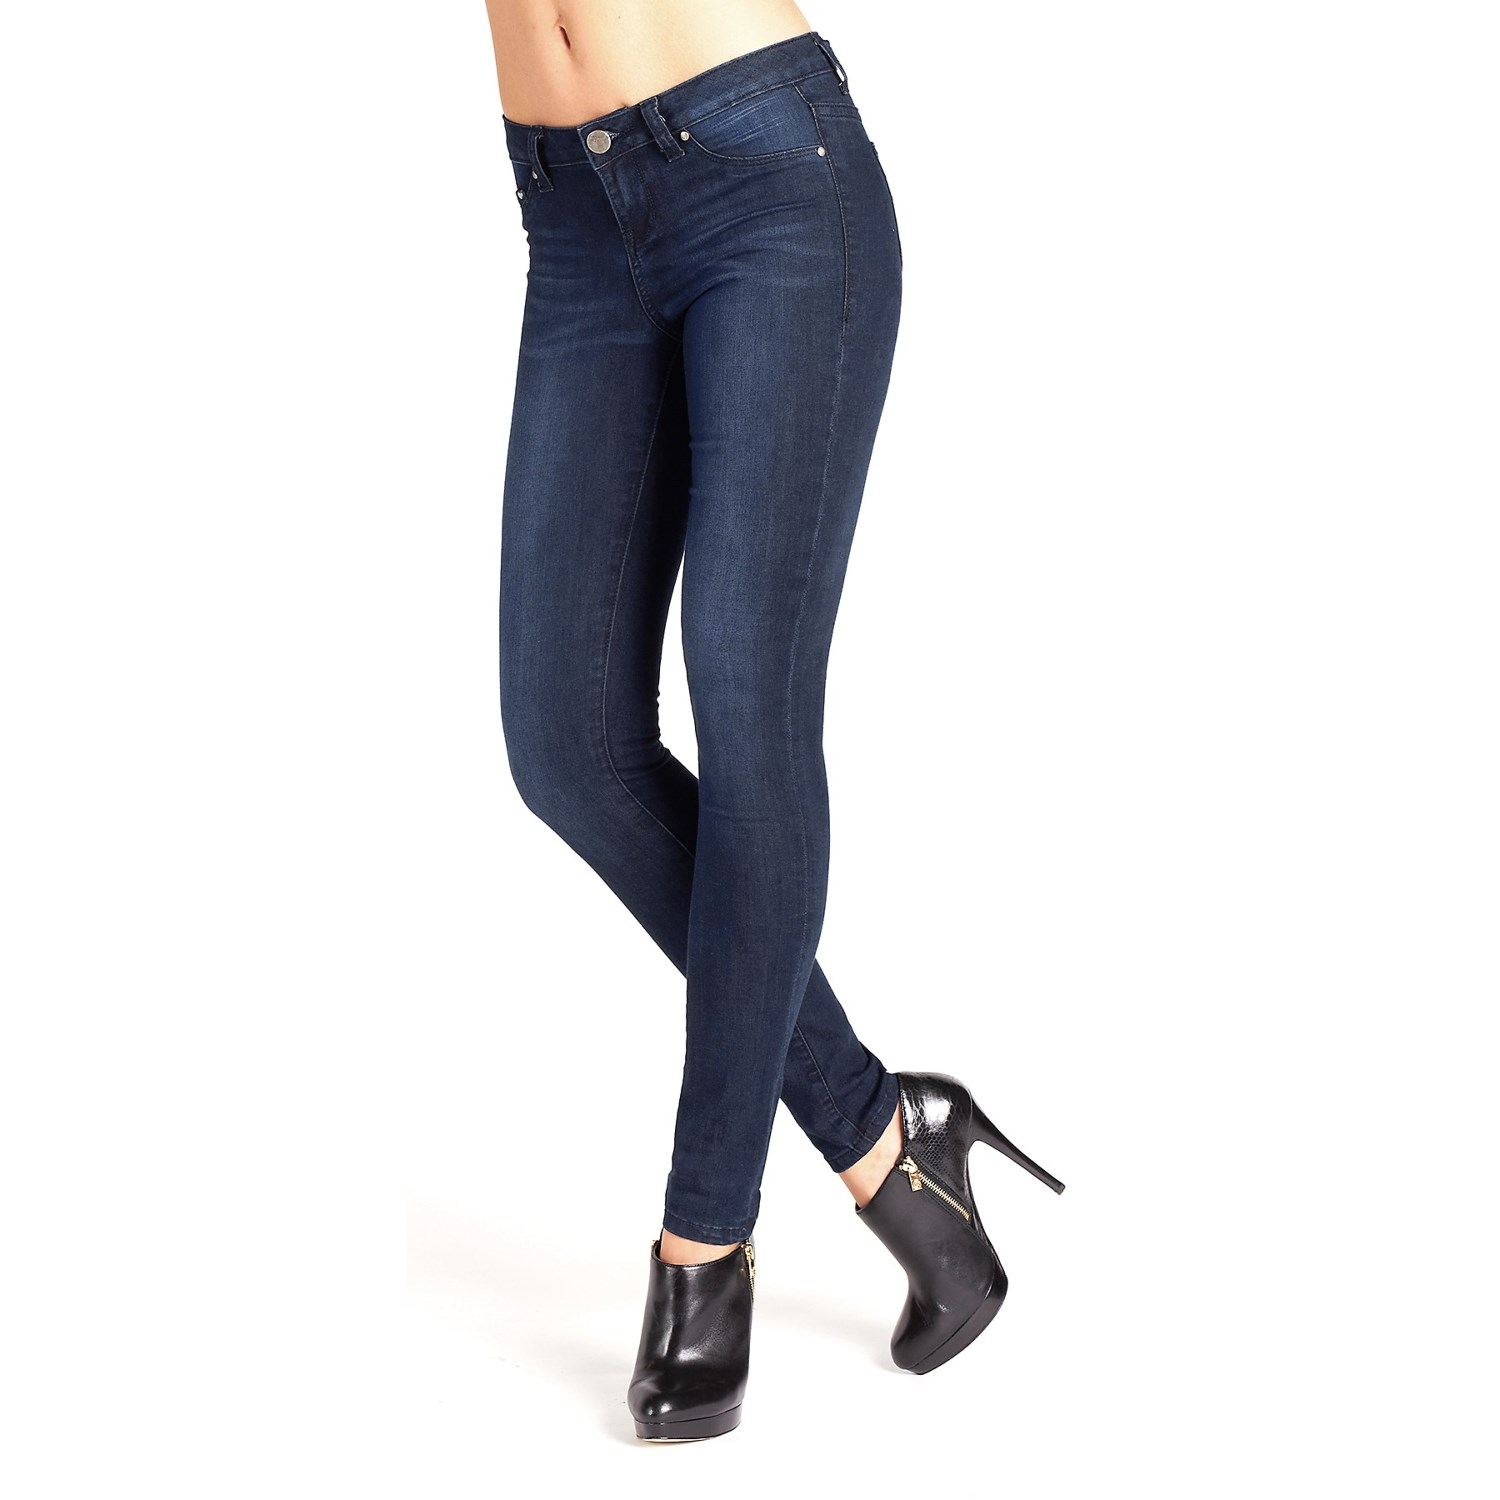 Jean leggings, also known to some as jeggings, are super stretchy and oh-so-soft with a skinny fit guaranteed to keep its form. And with a variety of washes (light, medium and dark), they are the perfect match for everything in your wardrobe.